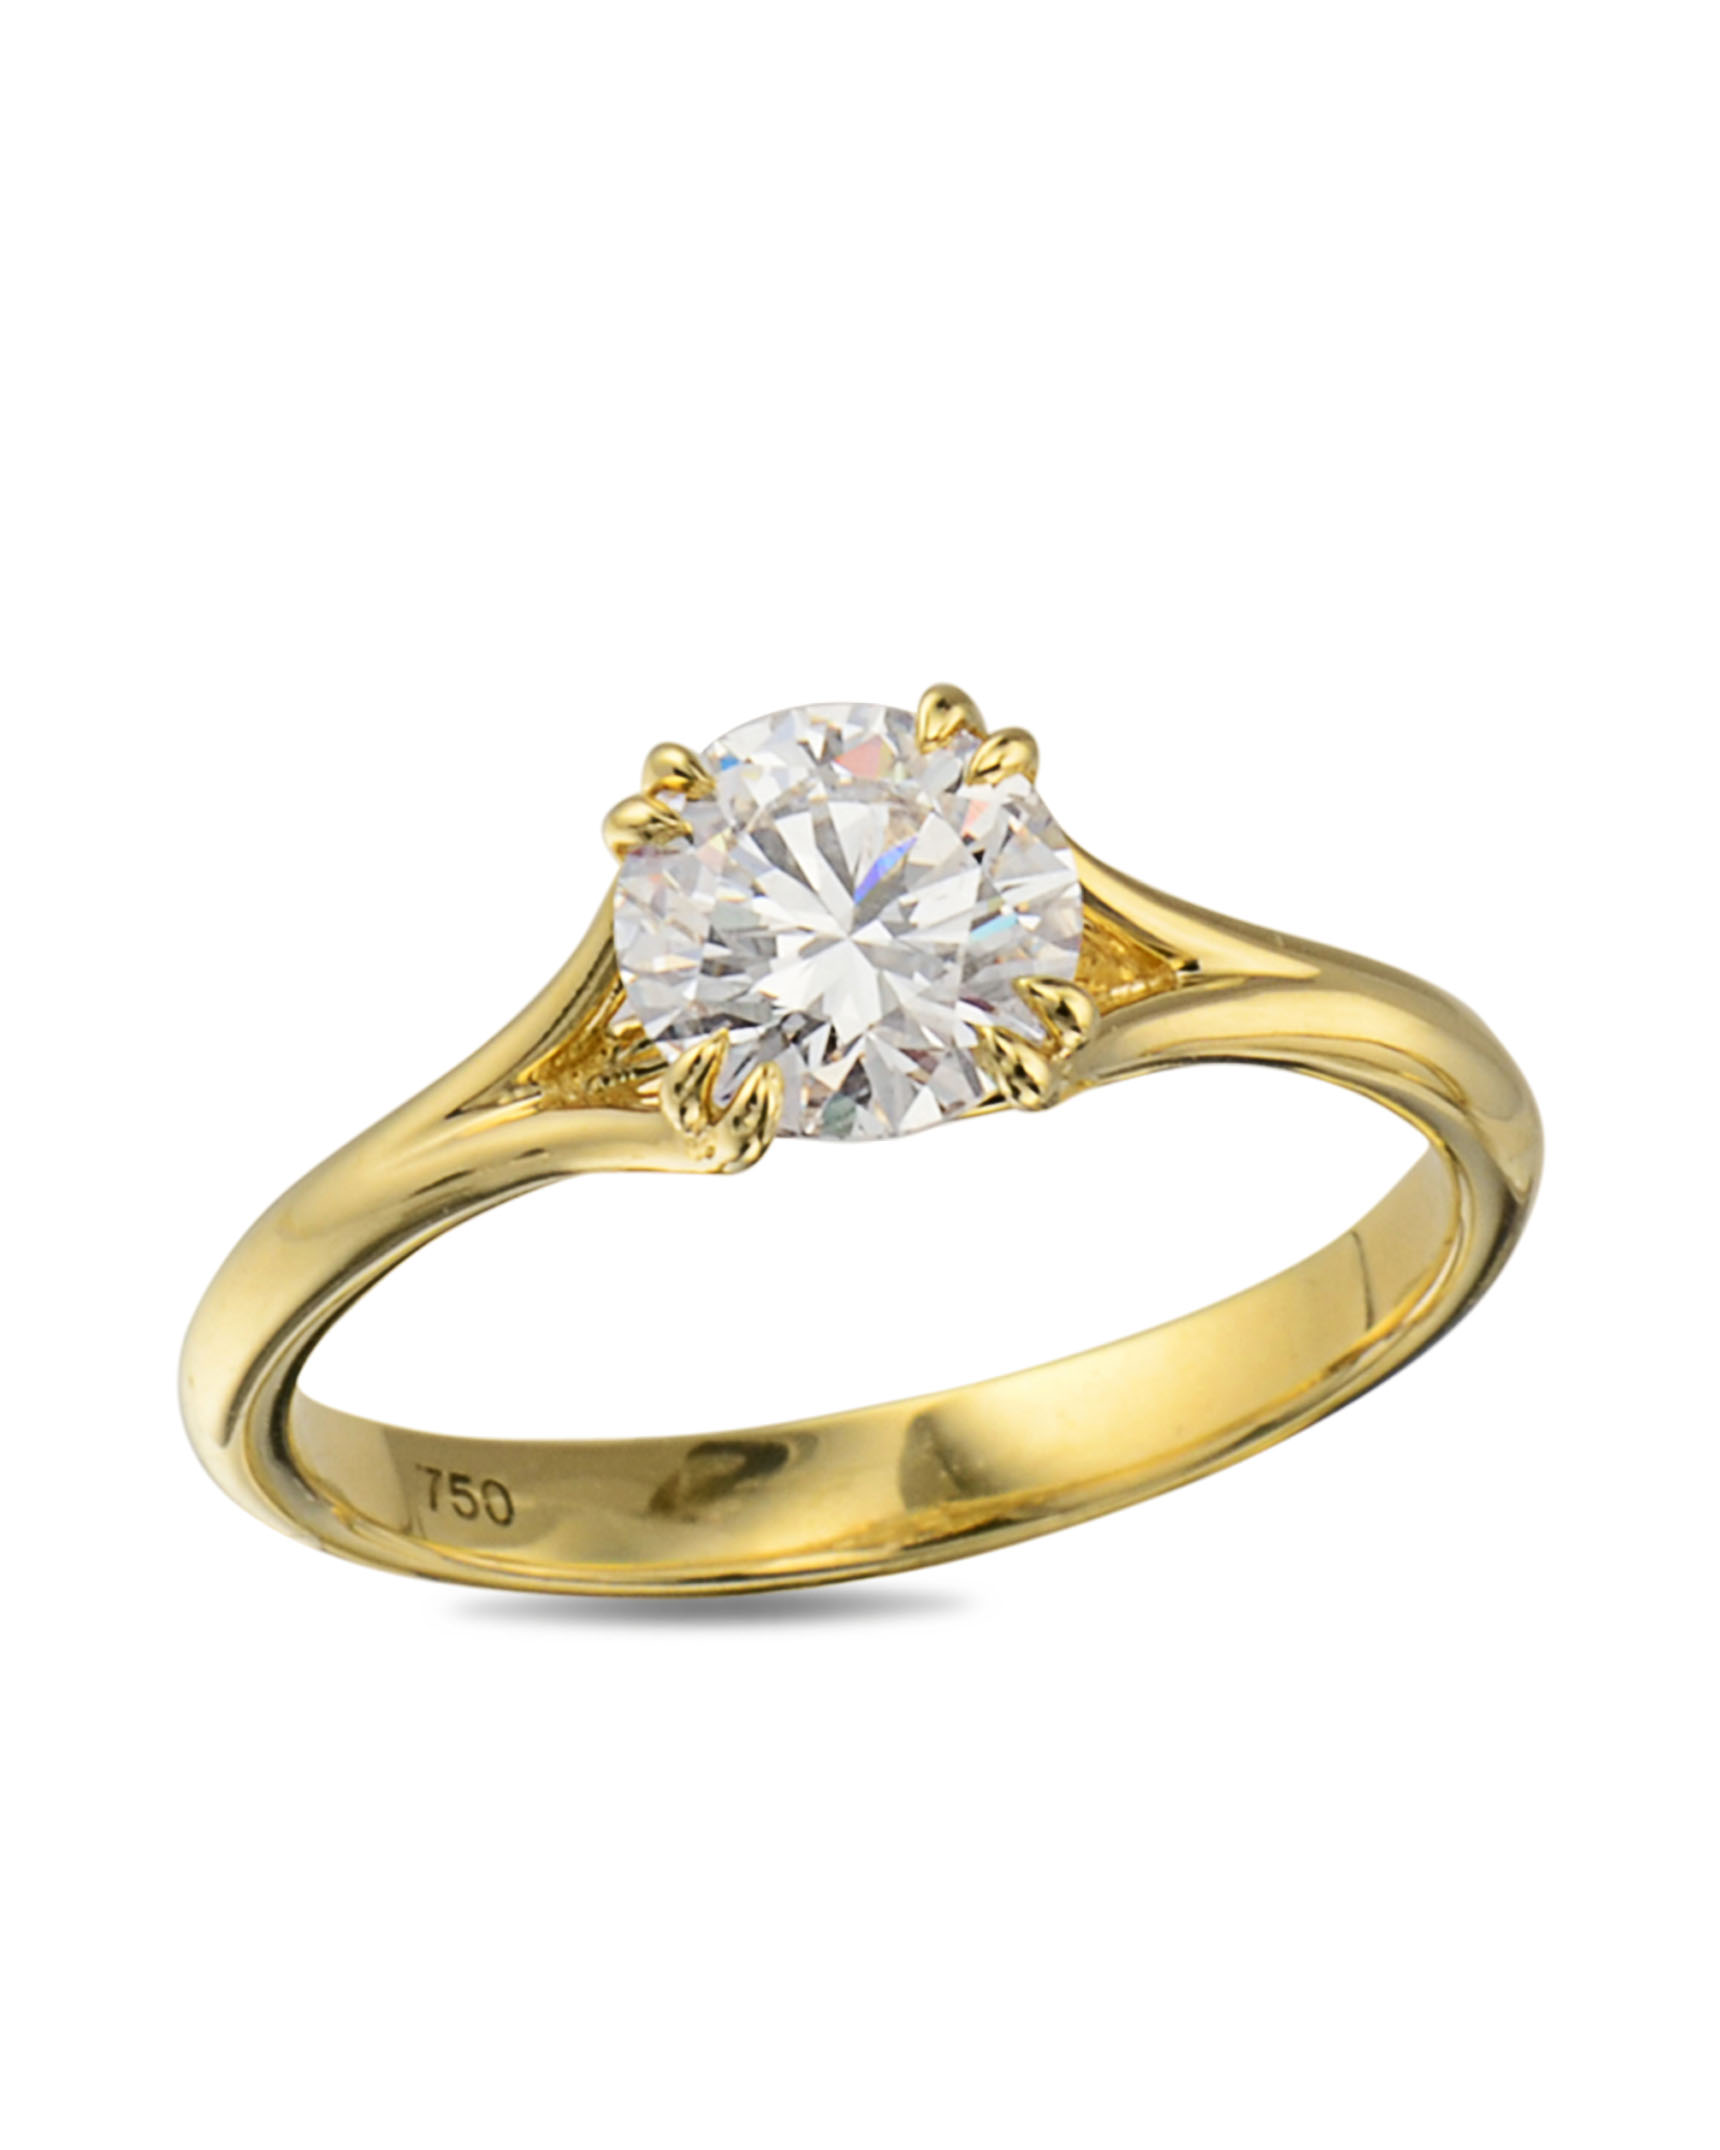 ring rings insignia gold verragio jewellery product f setting p diamond engagement diamondsbyraymondlee ins